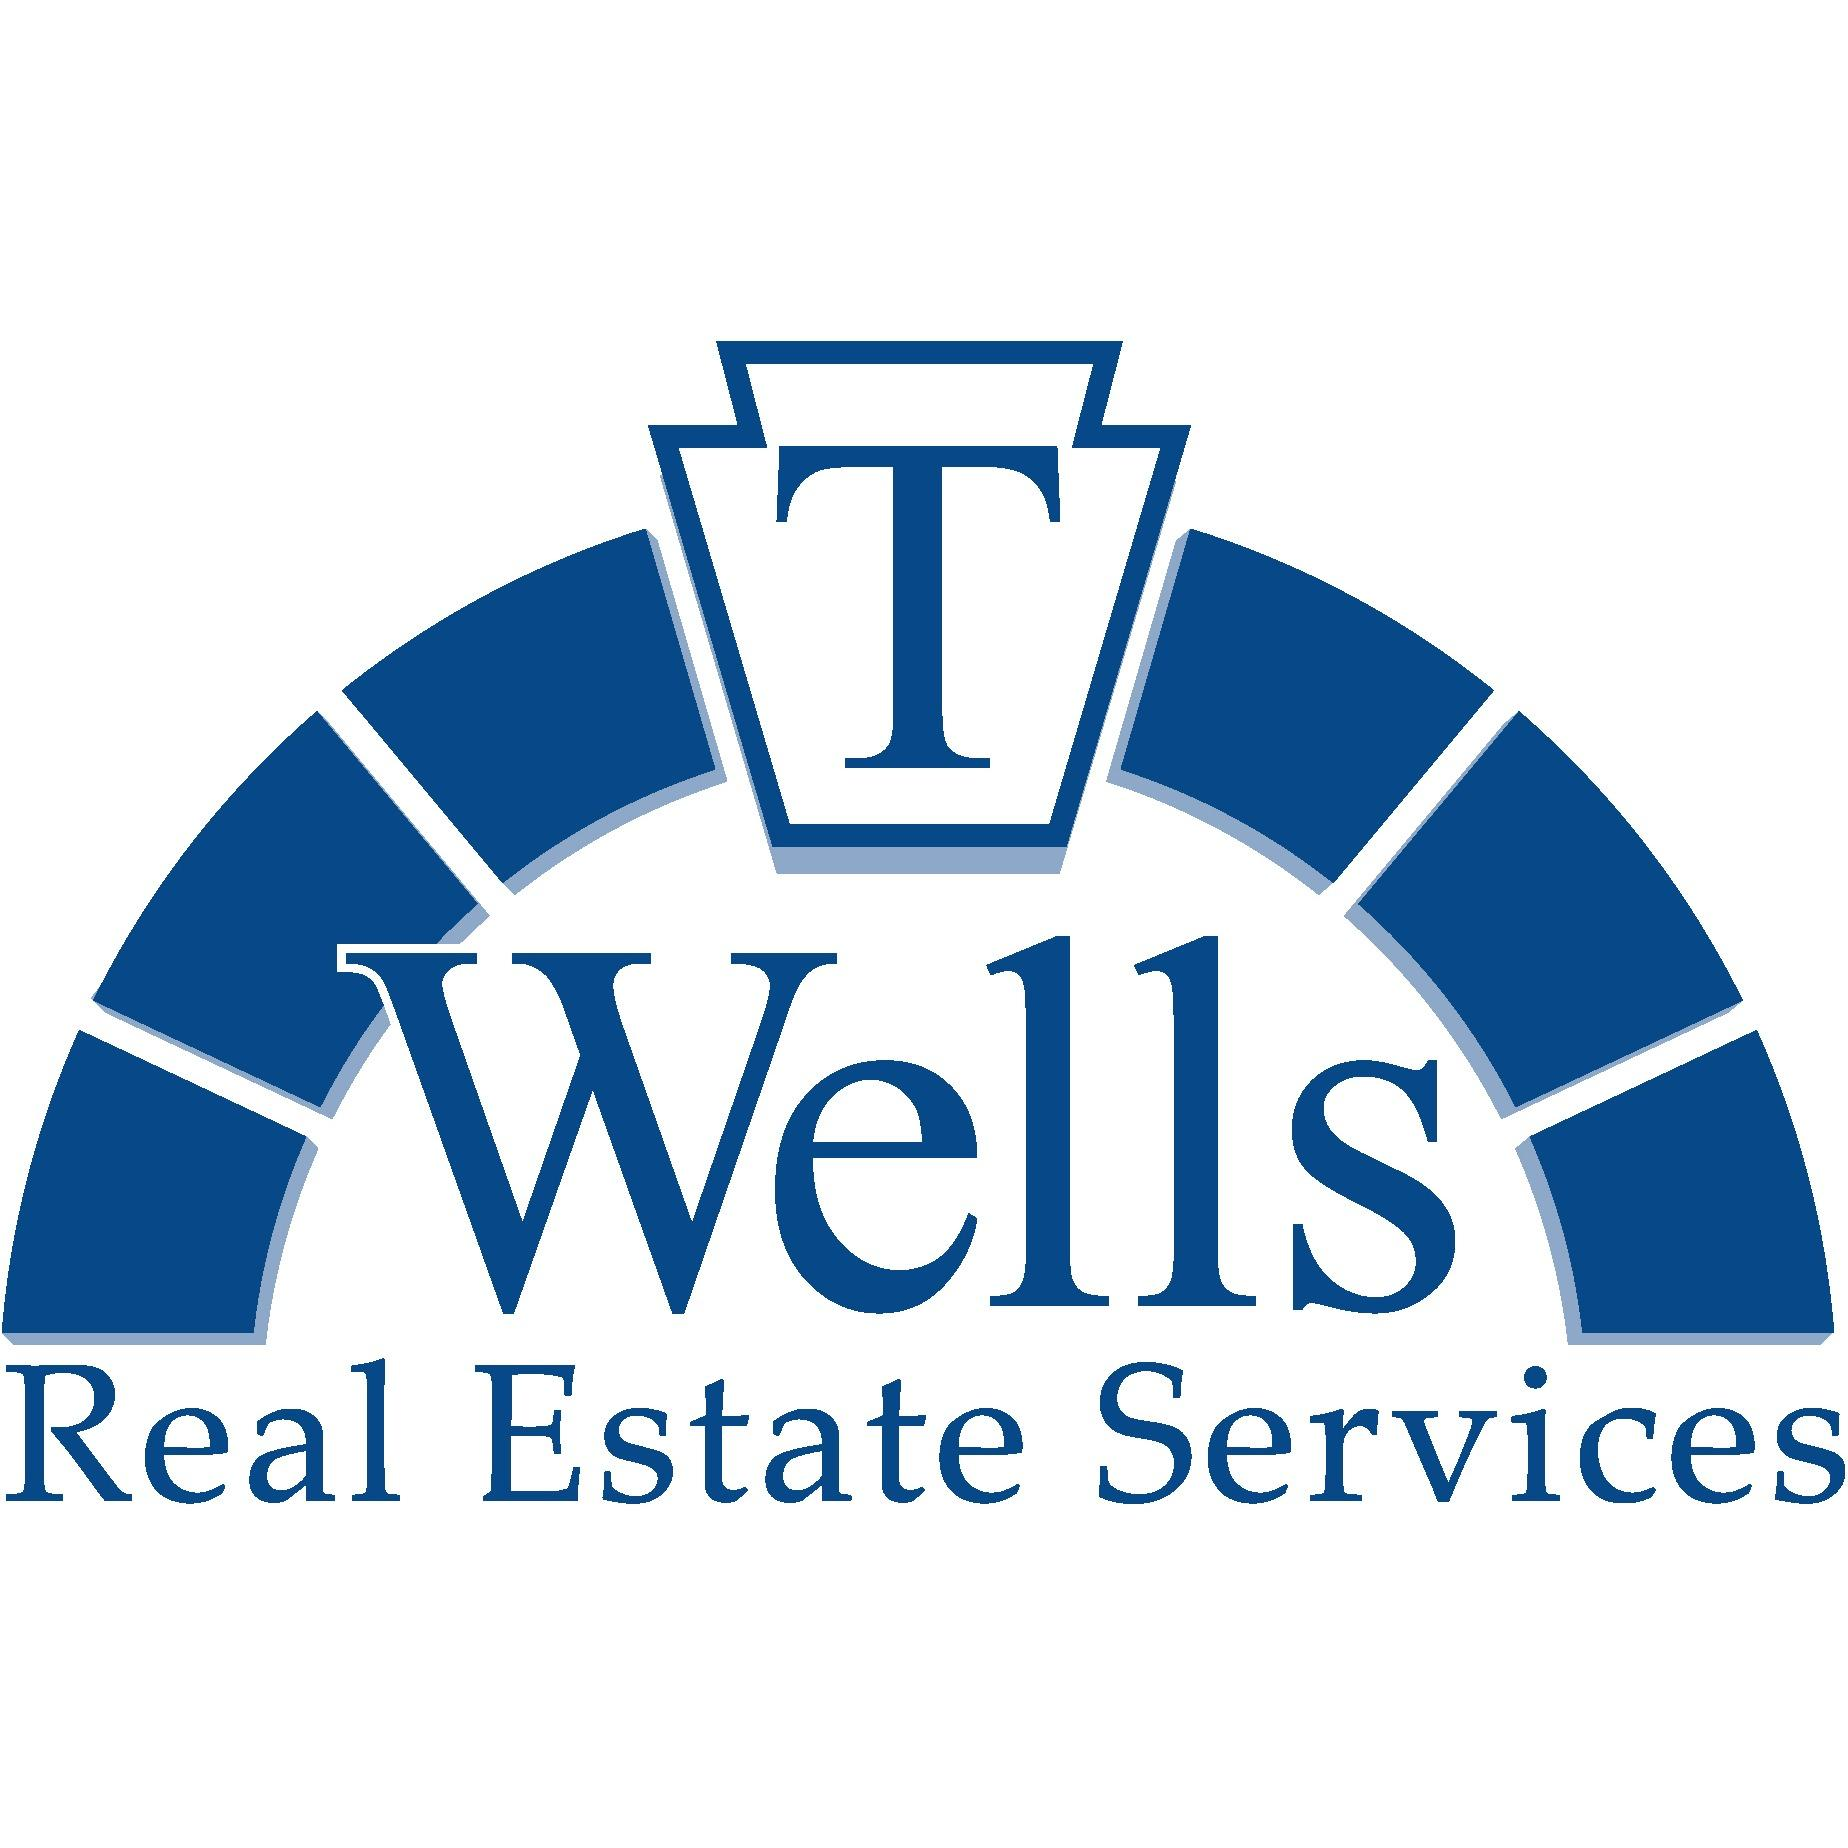 T.Wells Real Estate Services, LLC image 4